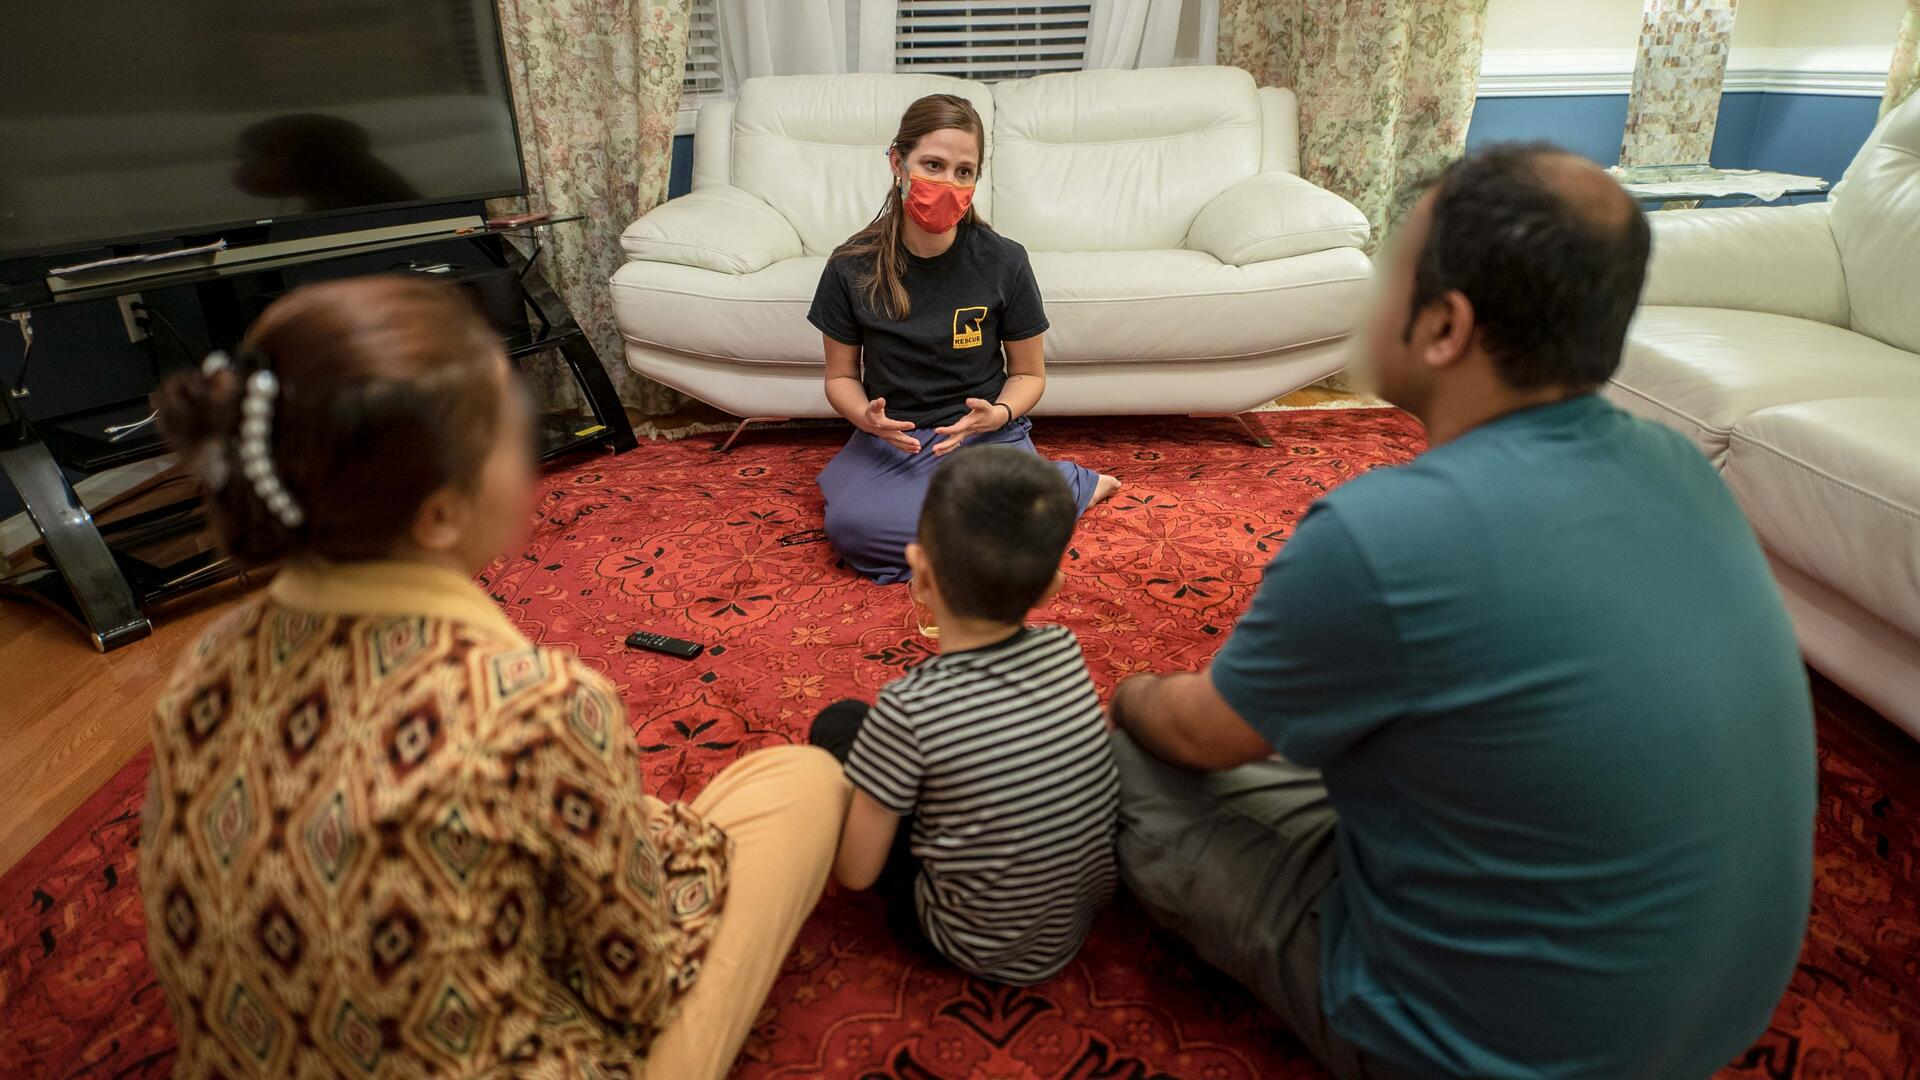 An IRC staff member sits and speaks with an Afghan man, woman, and child.